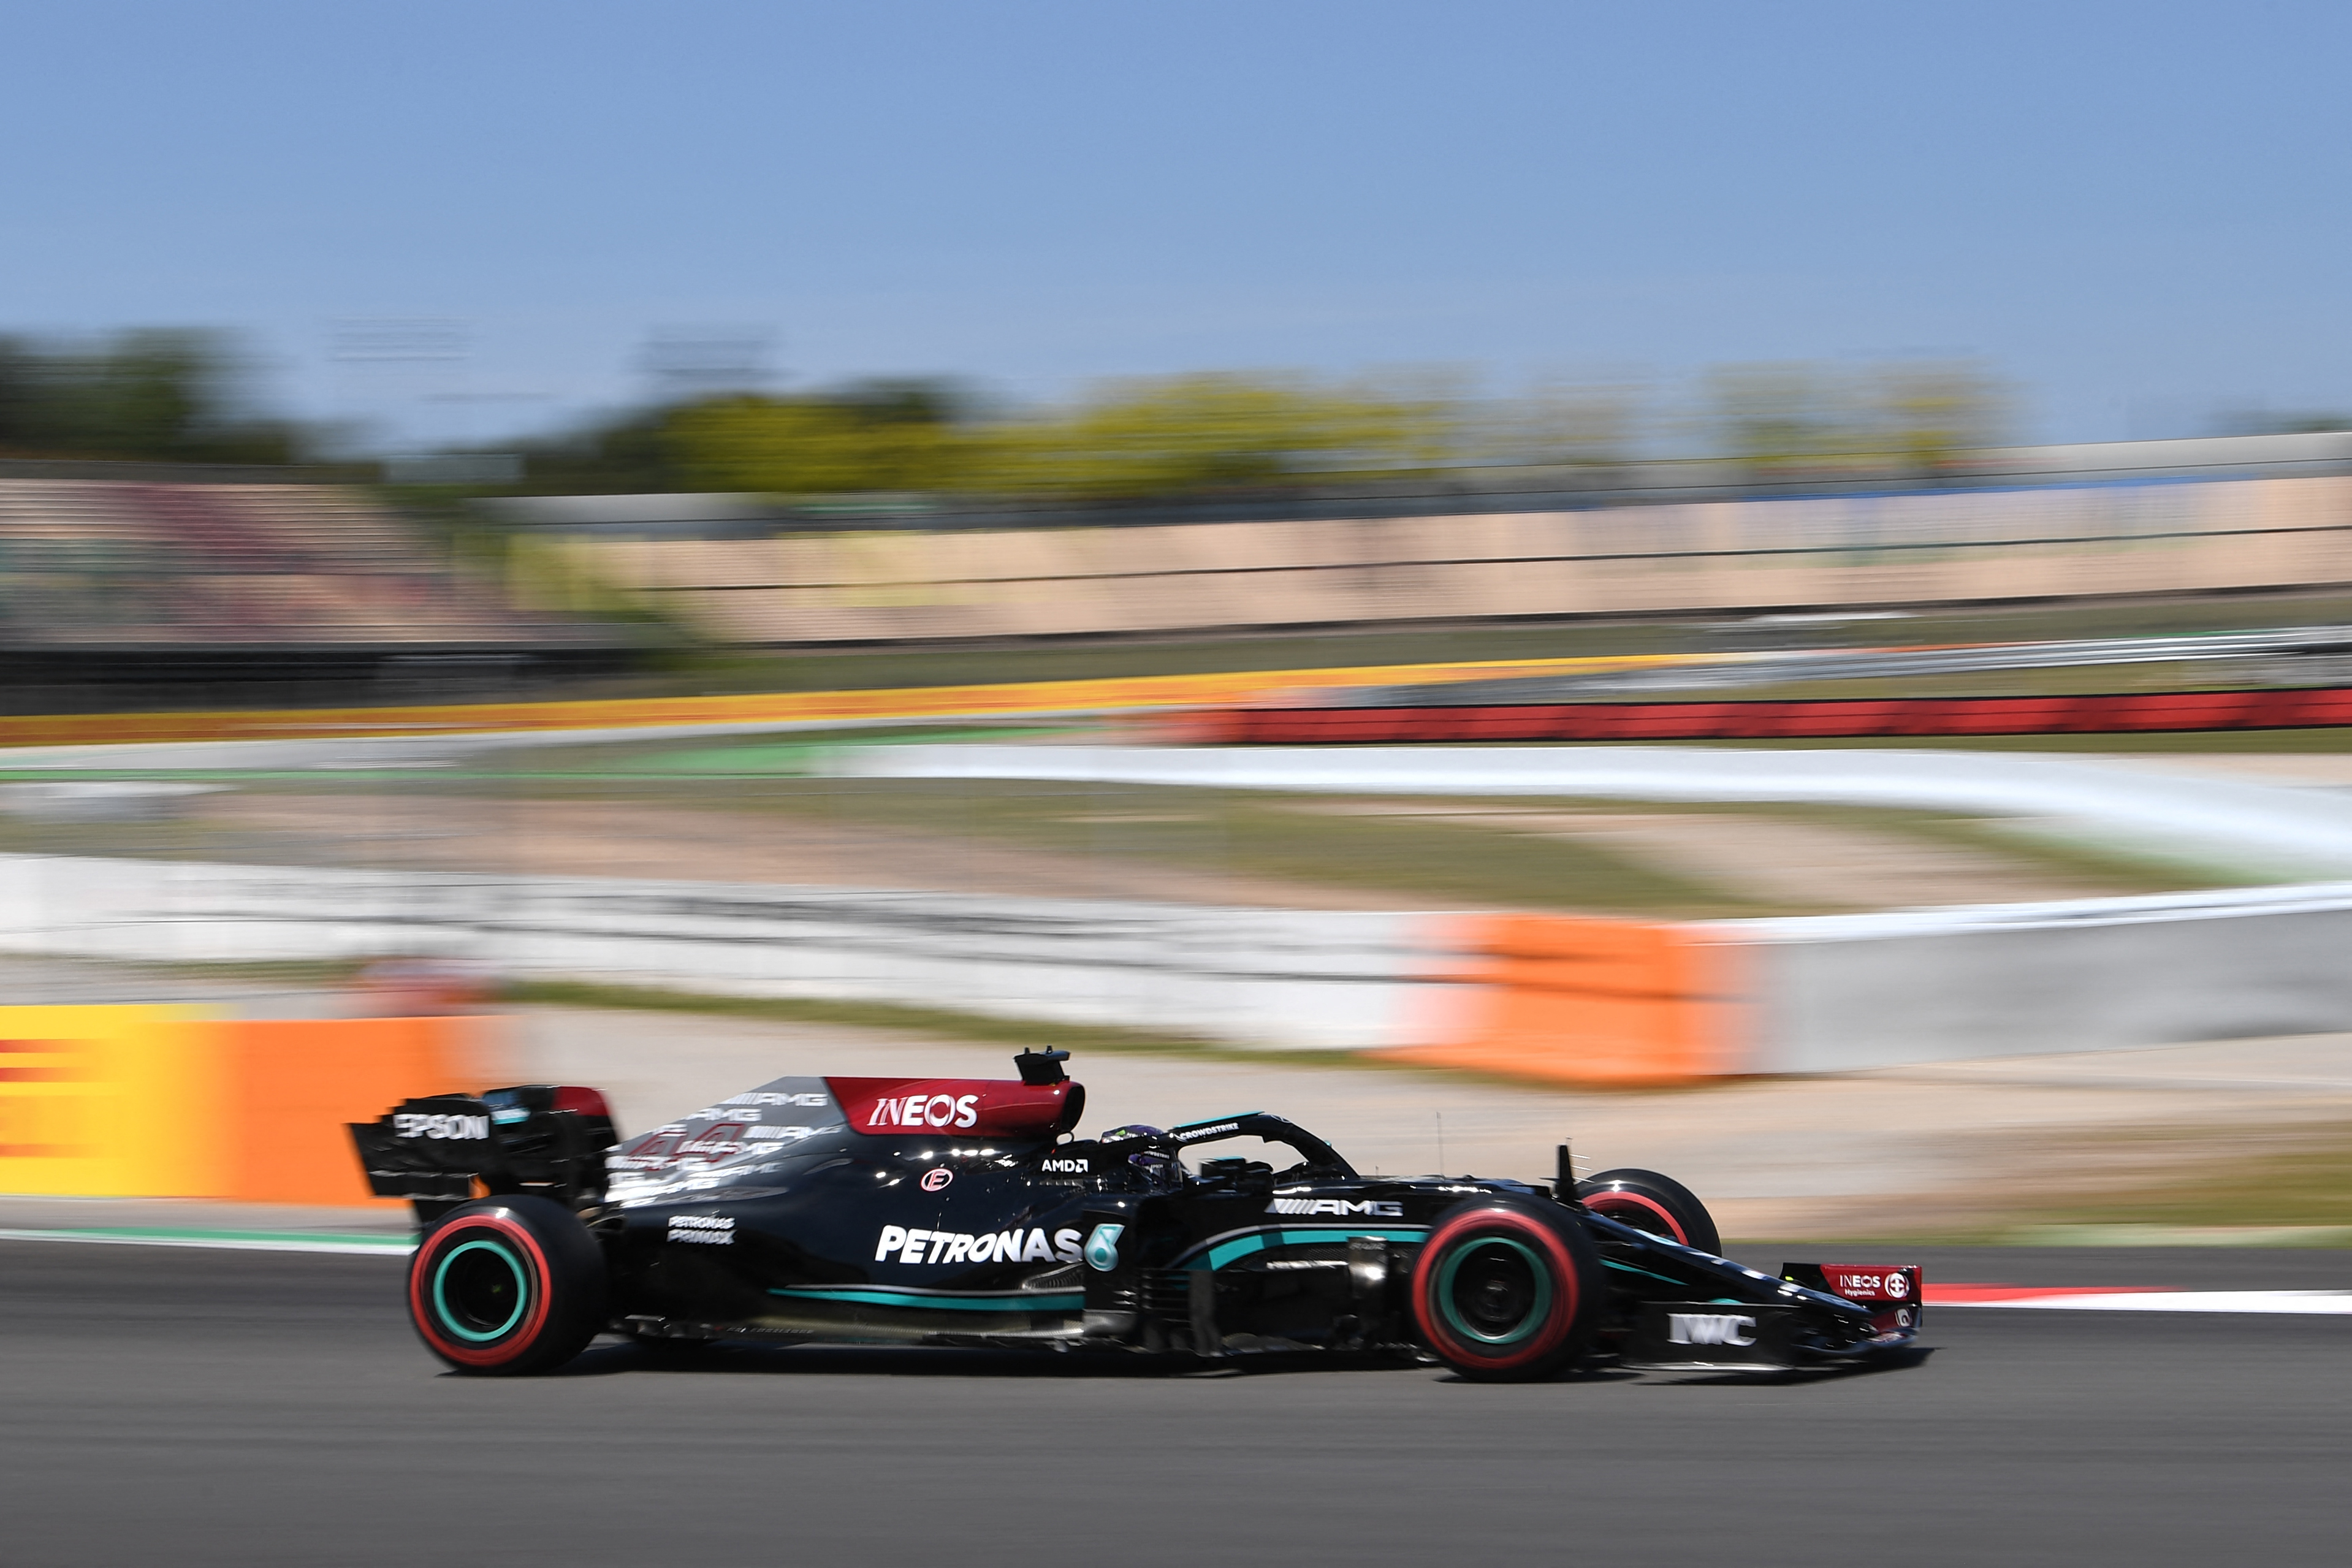 Hamilton claims 100th pole in qualifying for Spanish Grand Prix